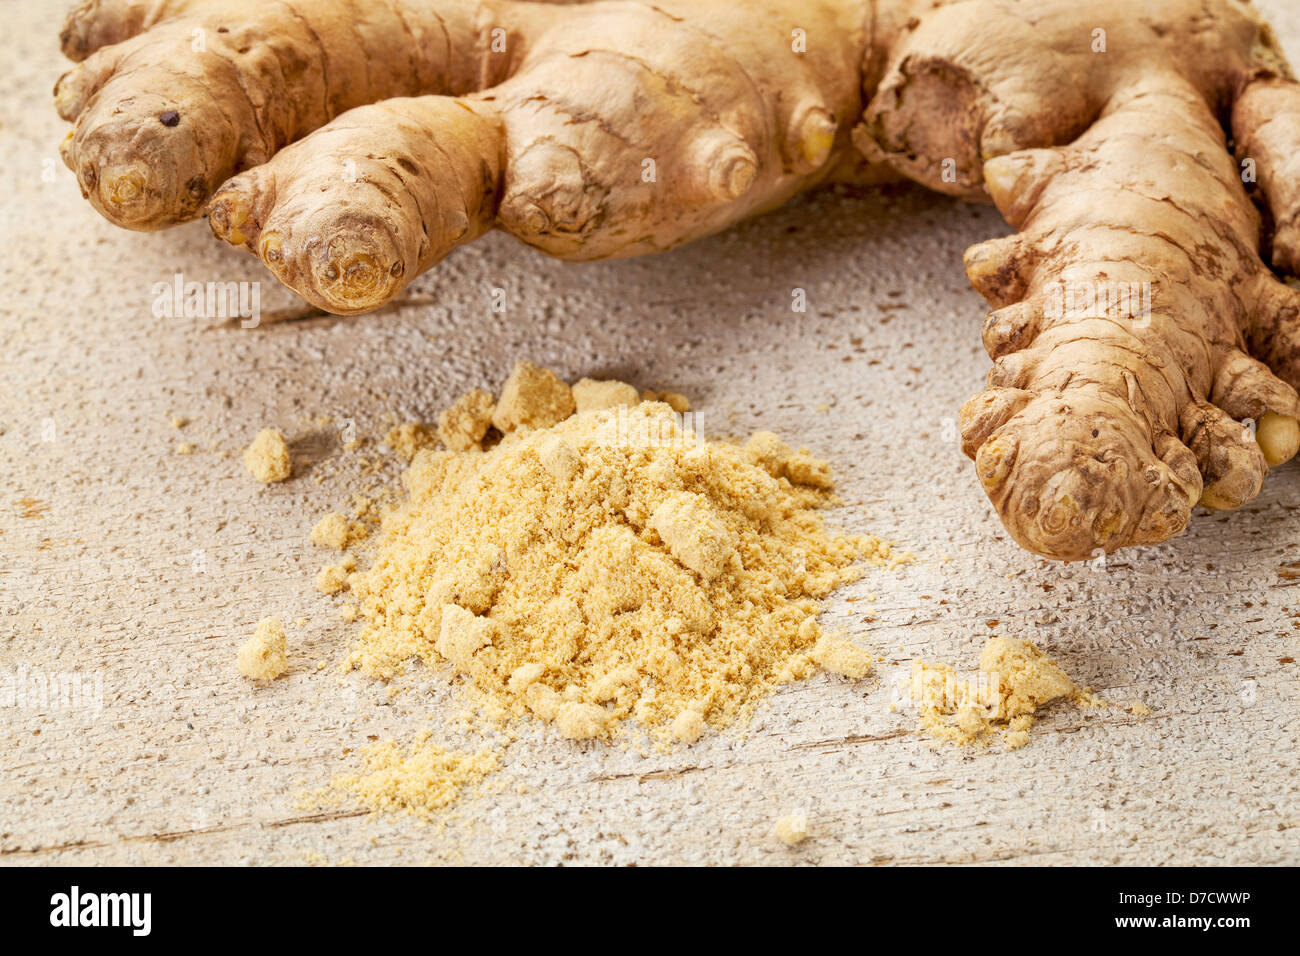 ginger root and powder on a rustic white painted barn wood background - Stock Image